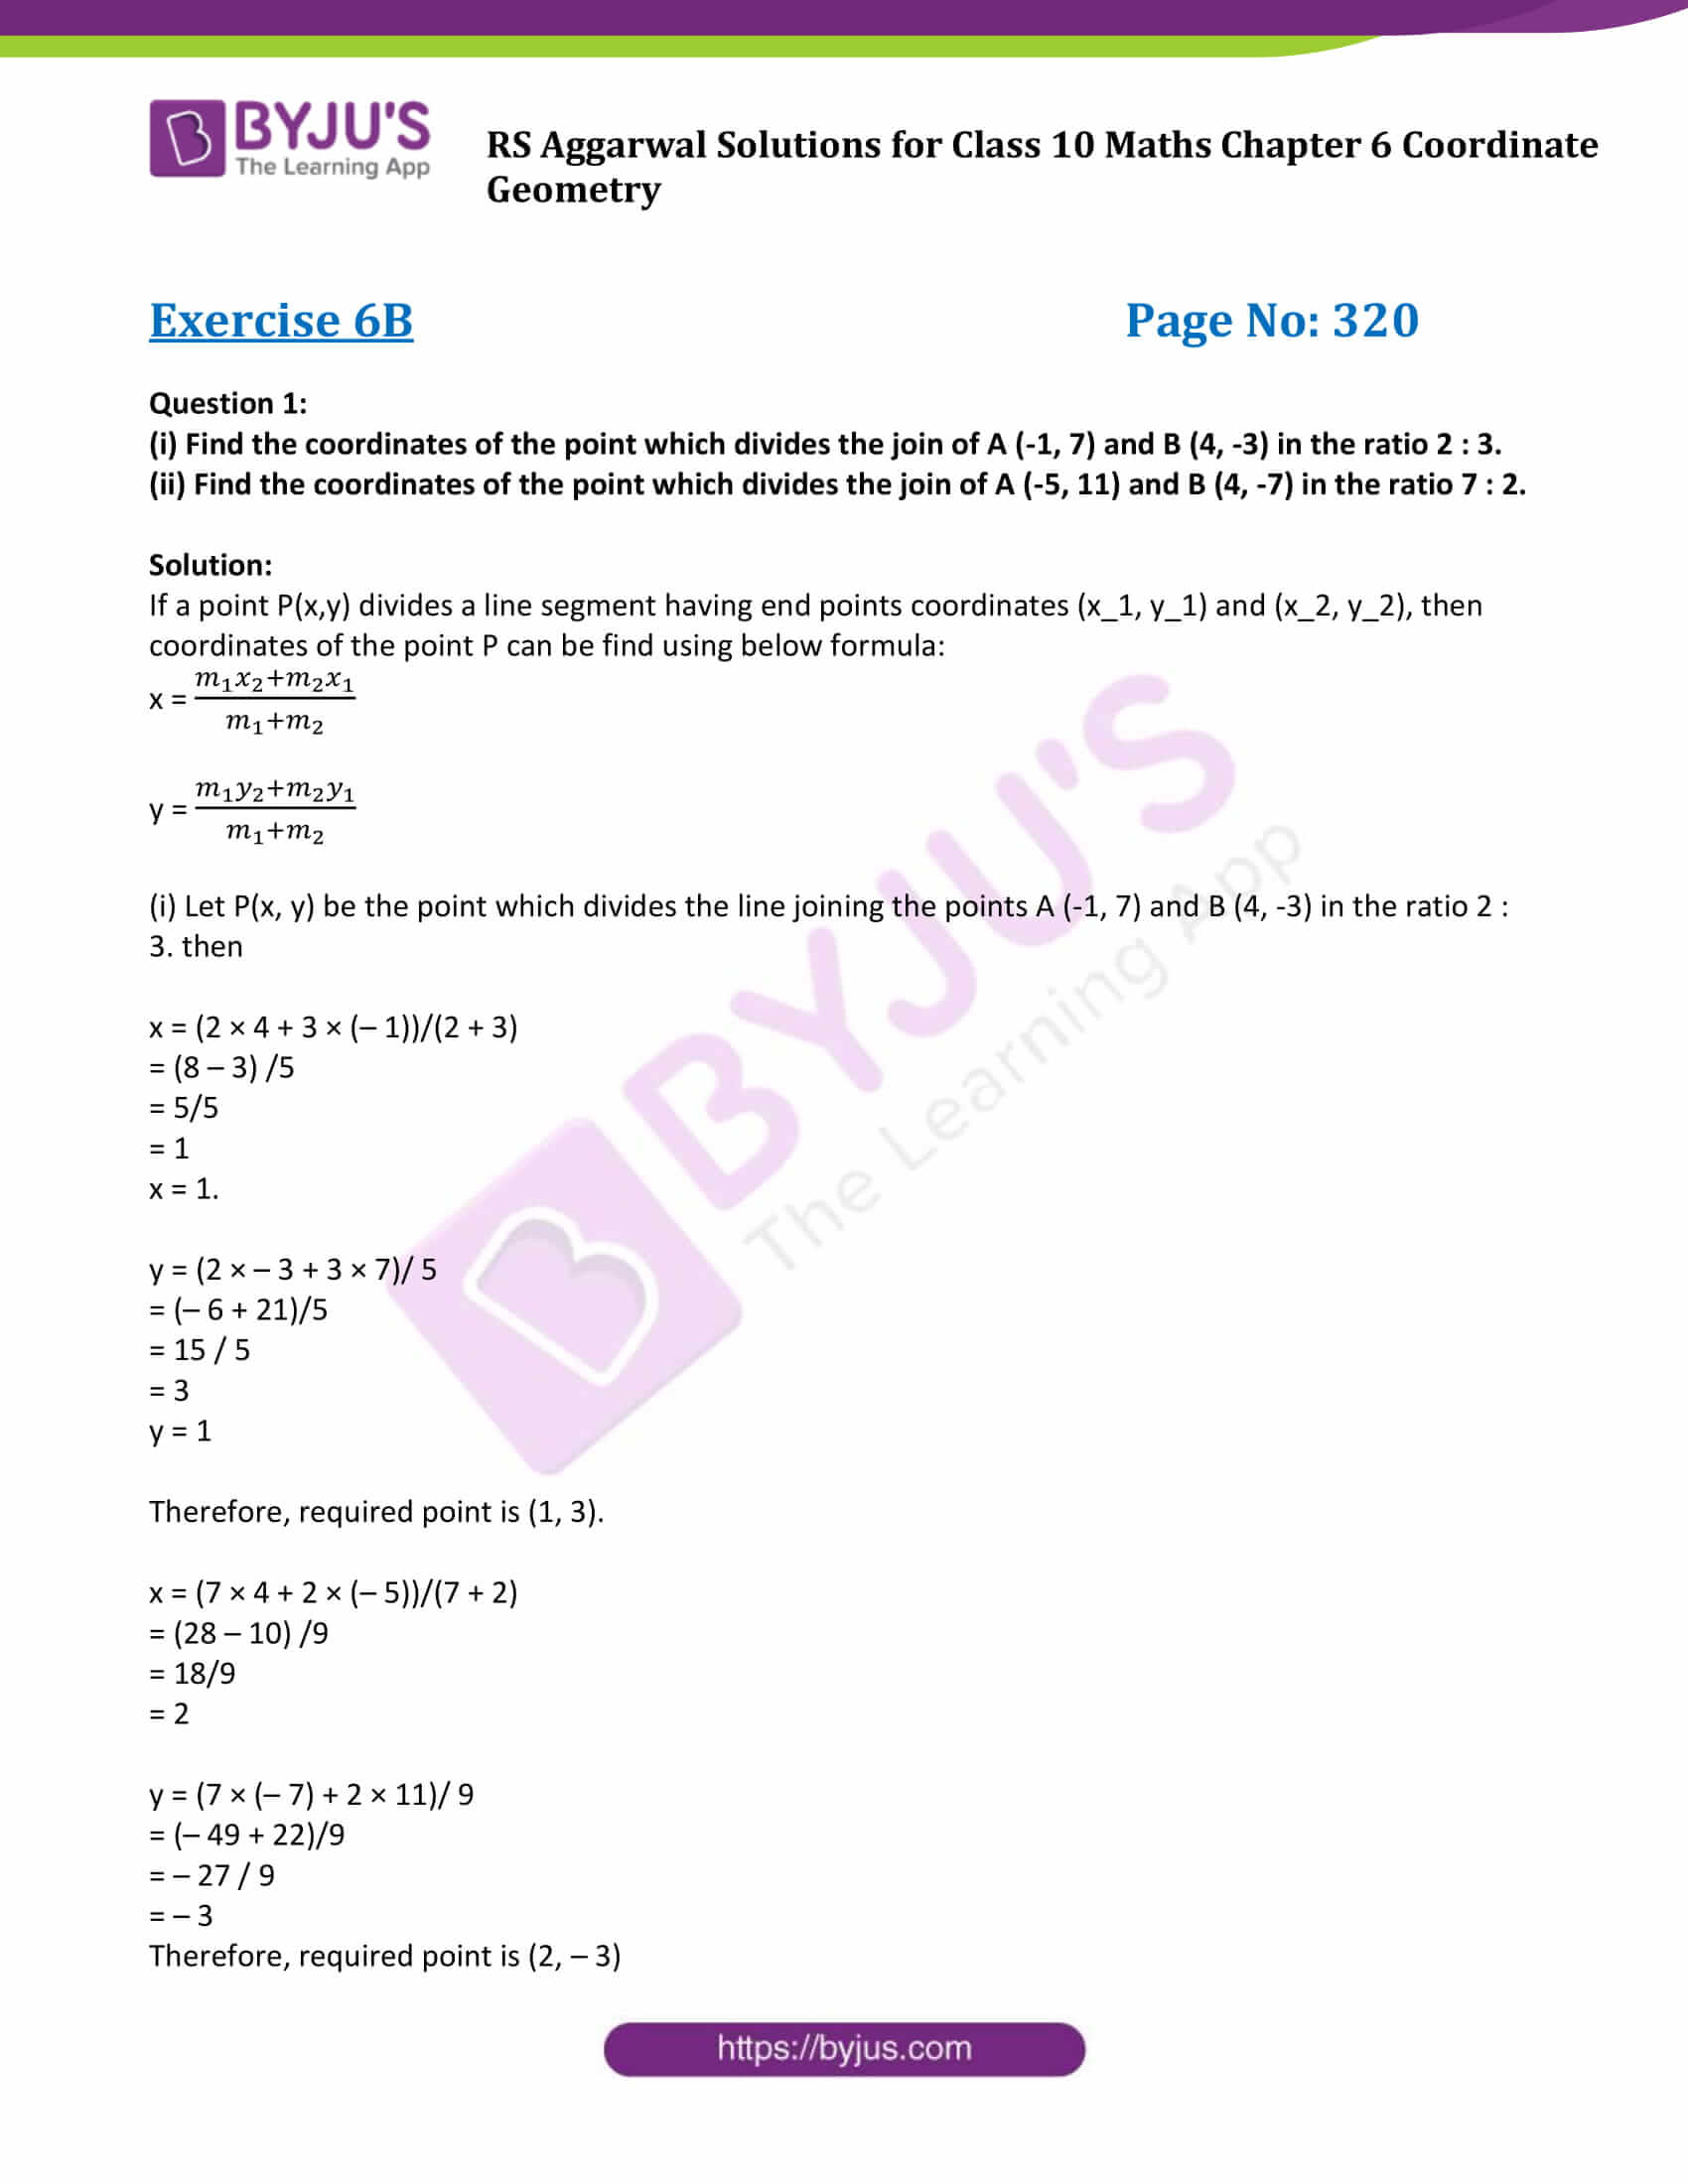 RS Aggarwal Sol class 10 Maths Chapter 6B